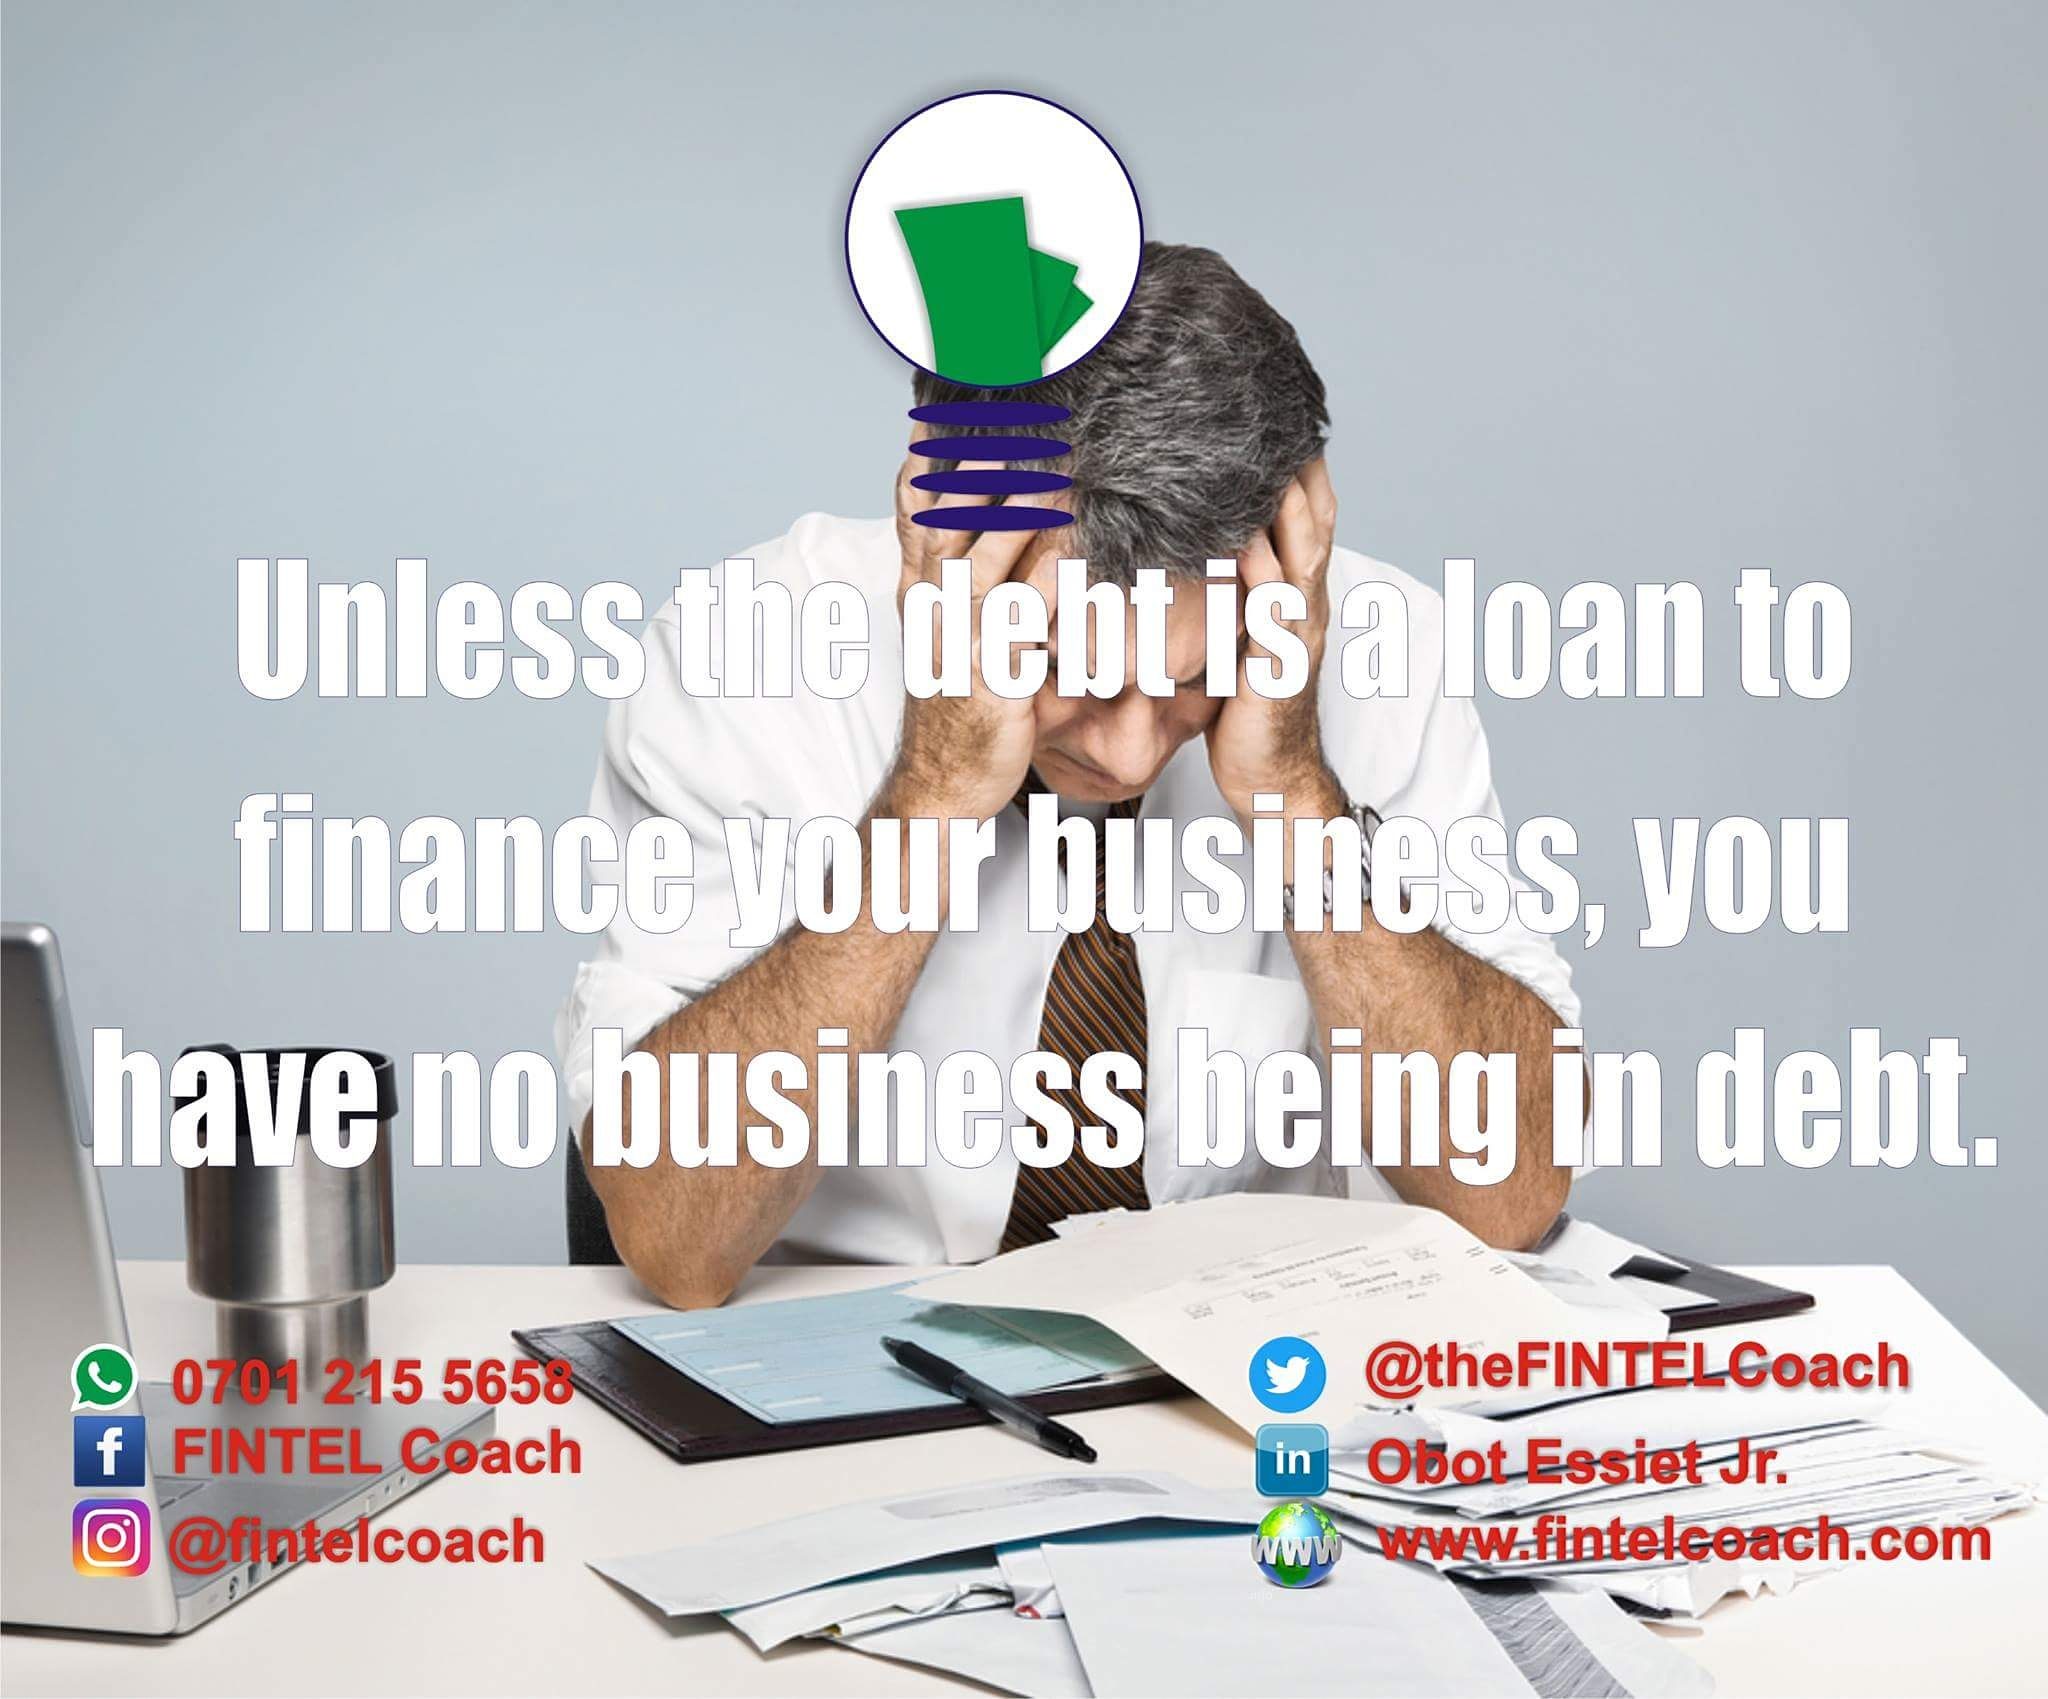 Debt - fintel coach